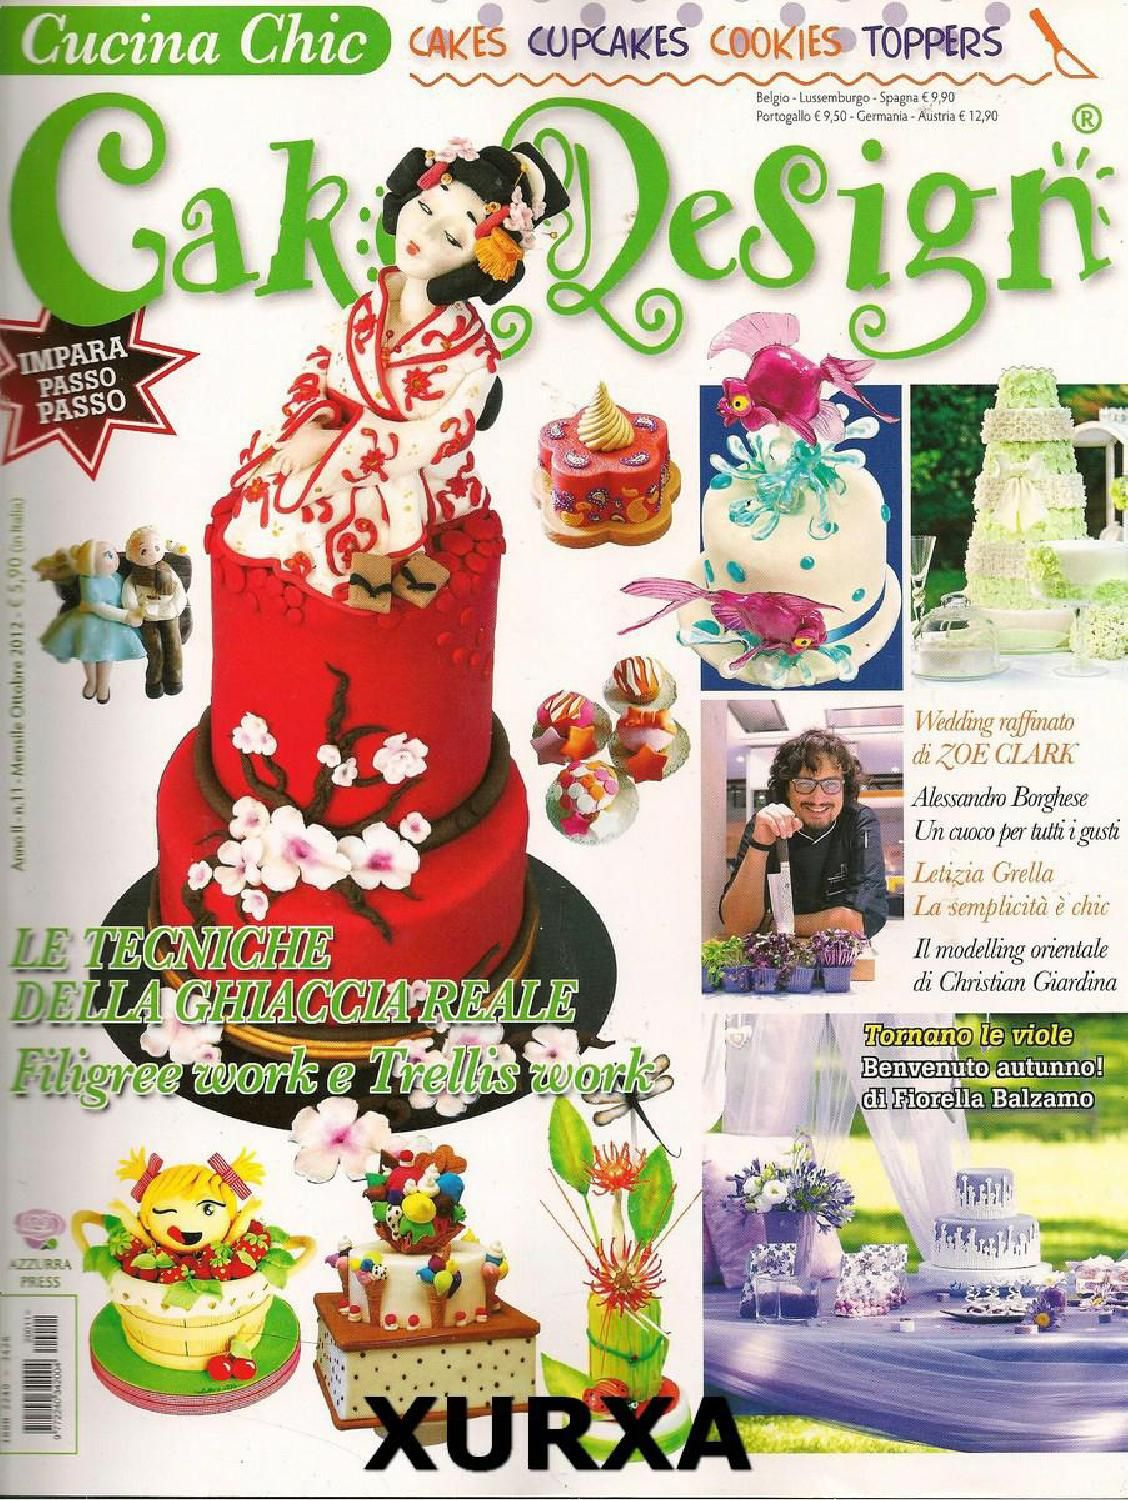 Cucina Chic Cake Design Oct 2012 | MISC. (DROP OFF - TO BE ...